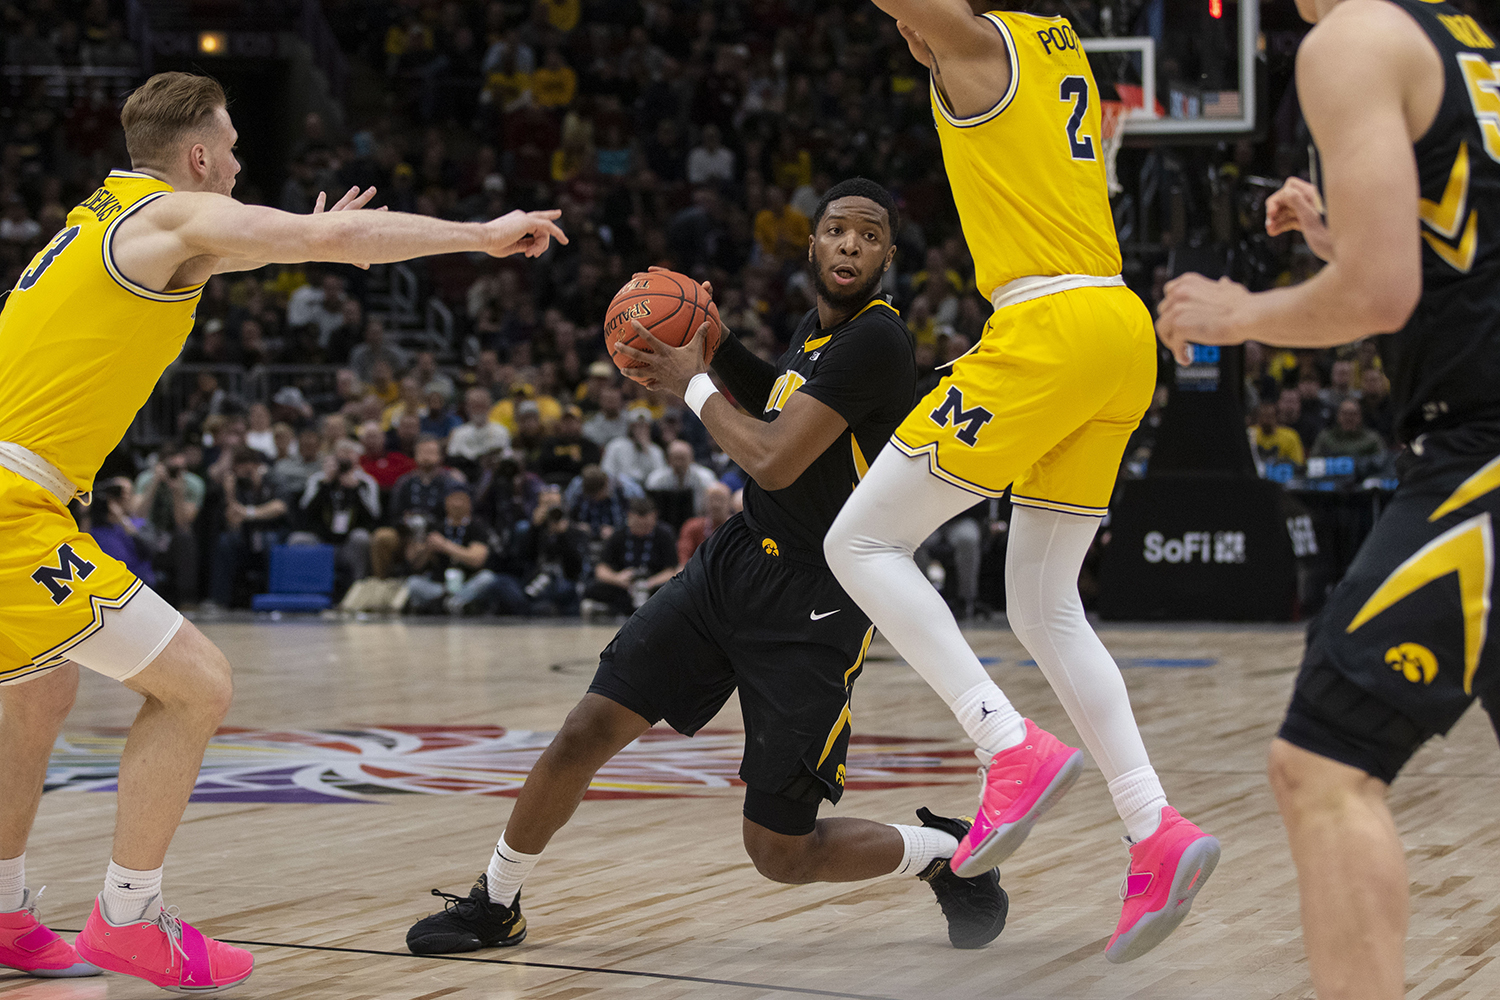 Iowa+guard+Isaiah+Moss+looks+to+pass+the+ball+during+the+Iowa%2FMichigan+Big+Ten+Tournament+men%27s+basketball+game+in+the+United+Center+in+Chicago+on+Friday%2C+March+15%2C+2019.+The+Wolverines+defeated+the+Hawkeyes%2C+74-53.+